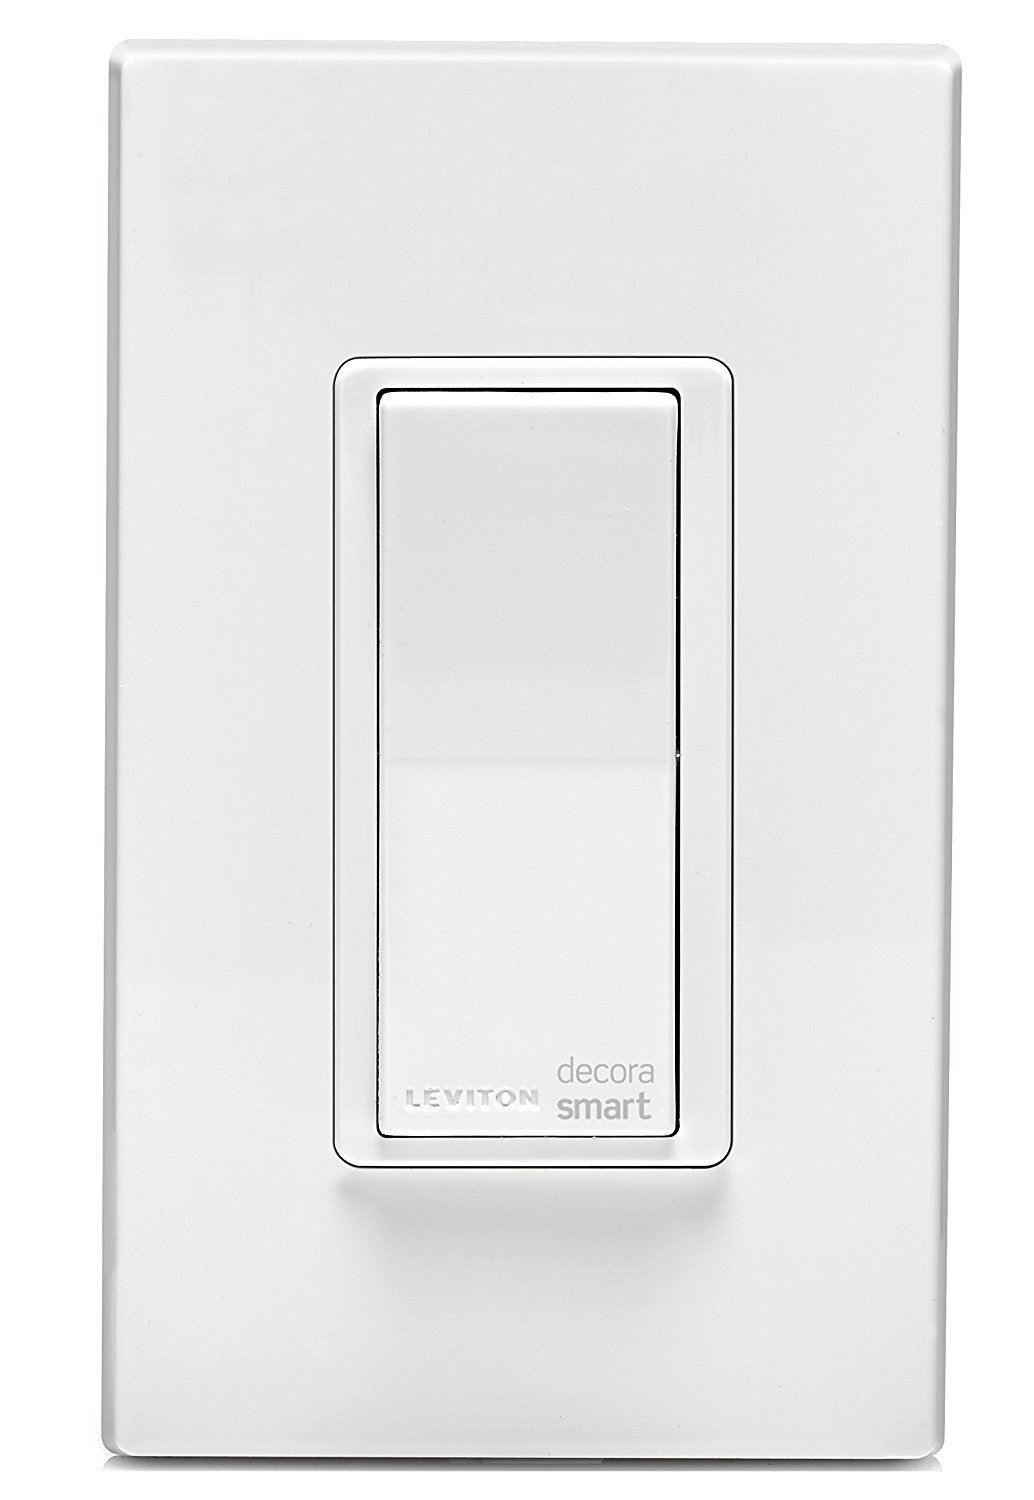 Leviton DW15S-1BZ Decora Smart Wi-Fi 15A Universal LED/Incandescent Switch, Works with Amazon Alexa, No Hub Required, 10-Pack, Piece